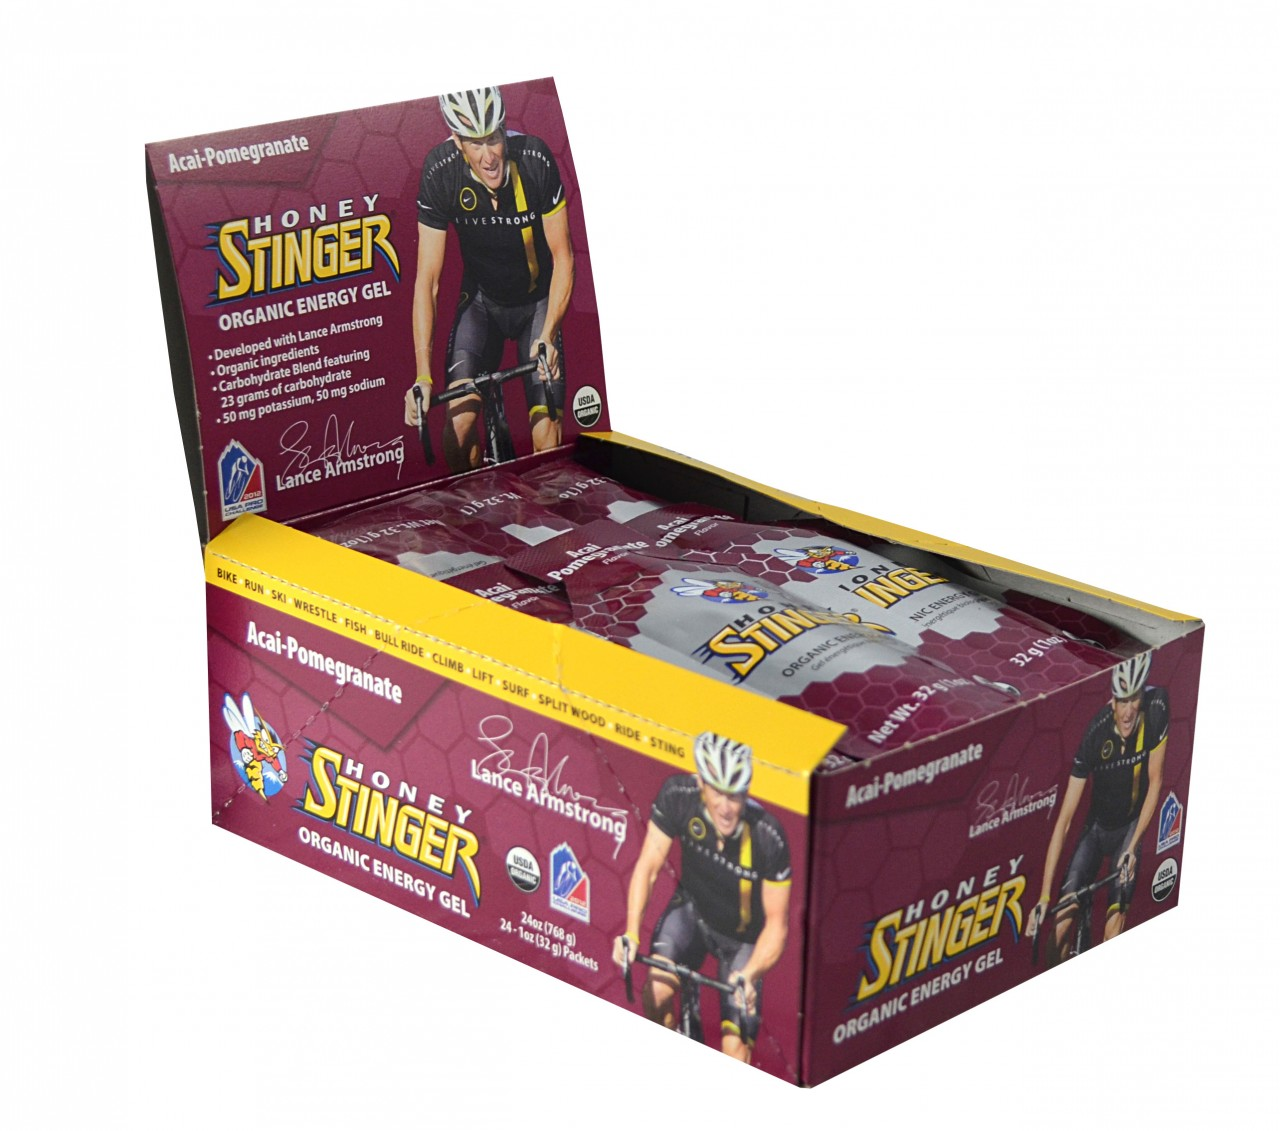 Honey Stinger Gels Acai Pomagranate Box